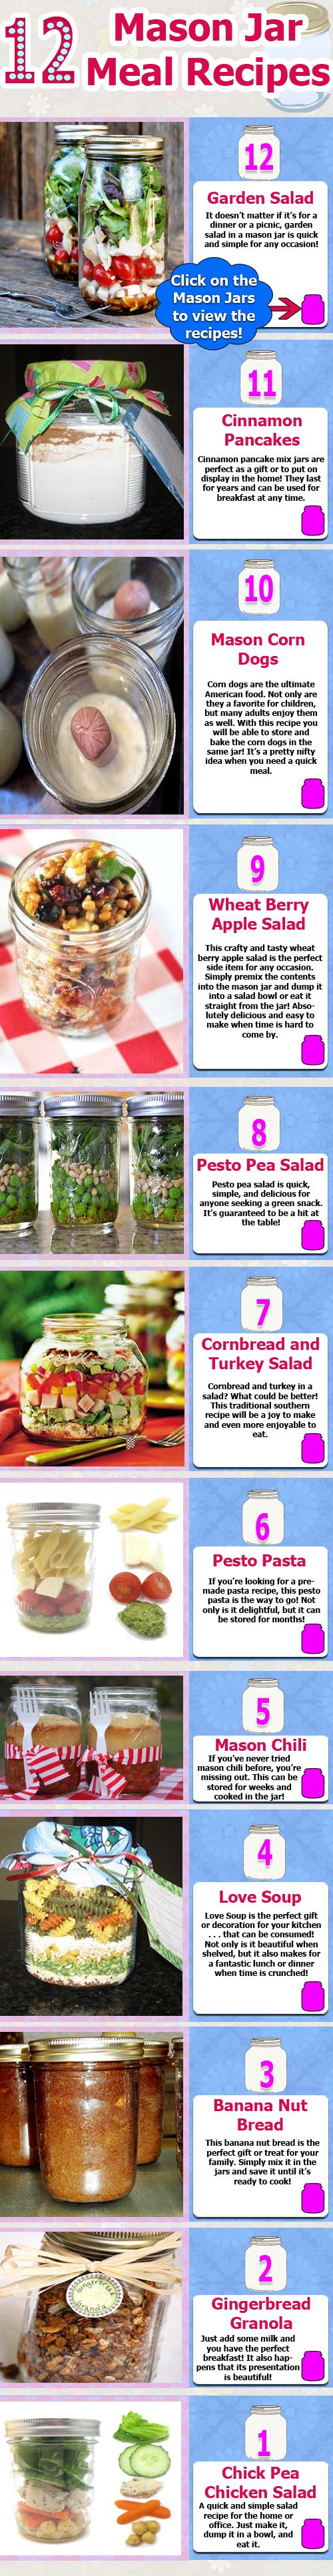 12 great mason jar recipes!